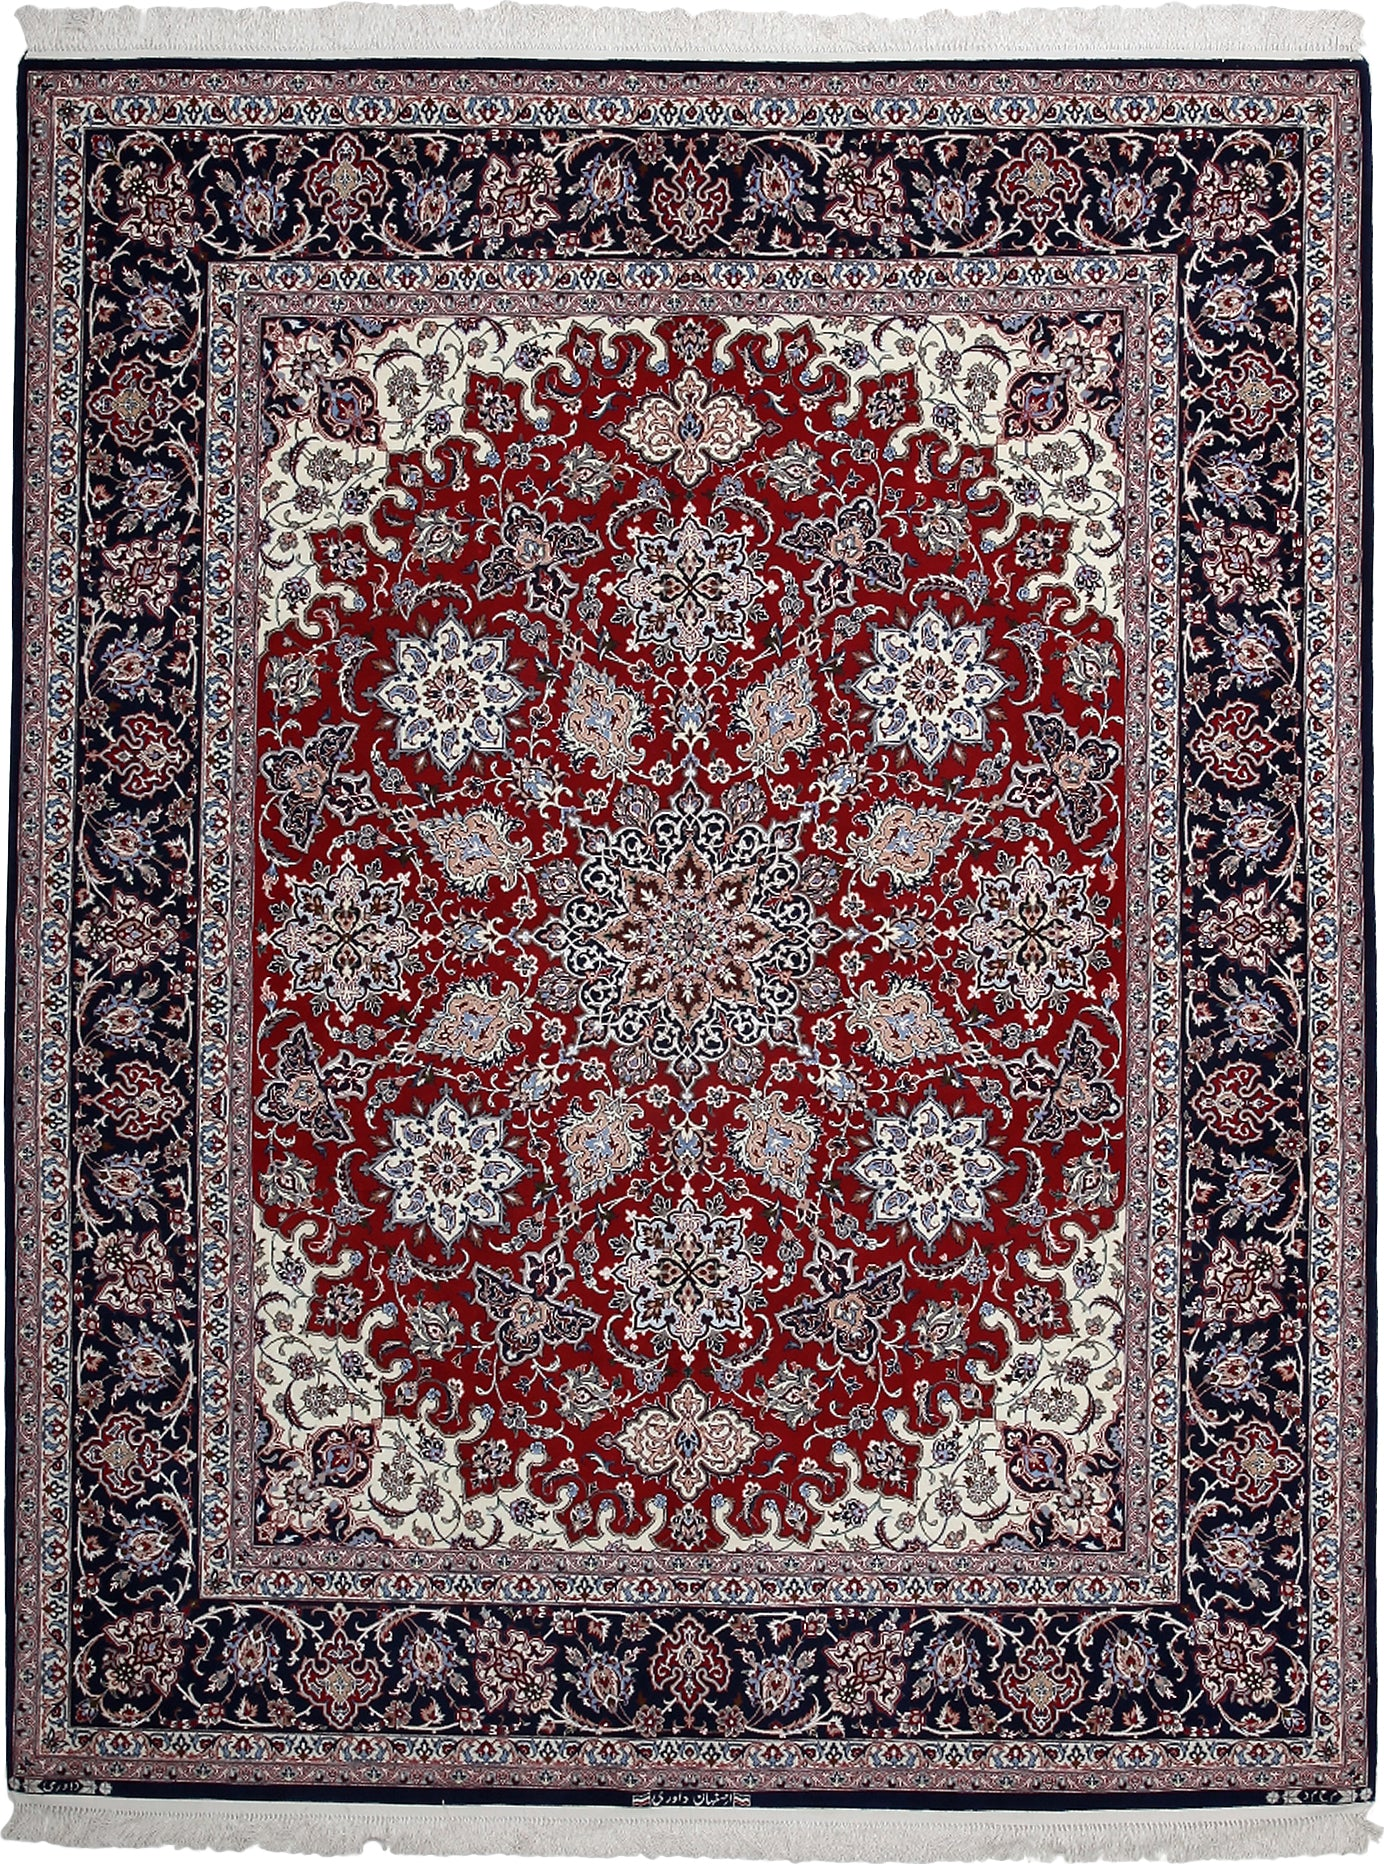 Solo Rugs Isfahan Lonban M5780-18416 Cherry Area Rug main image